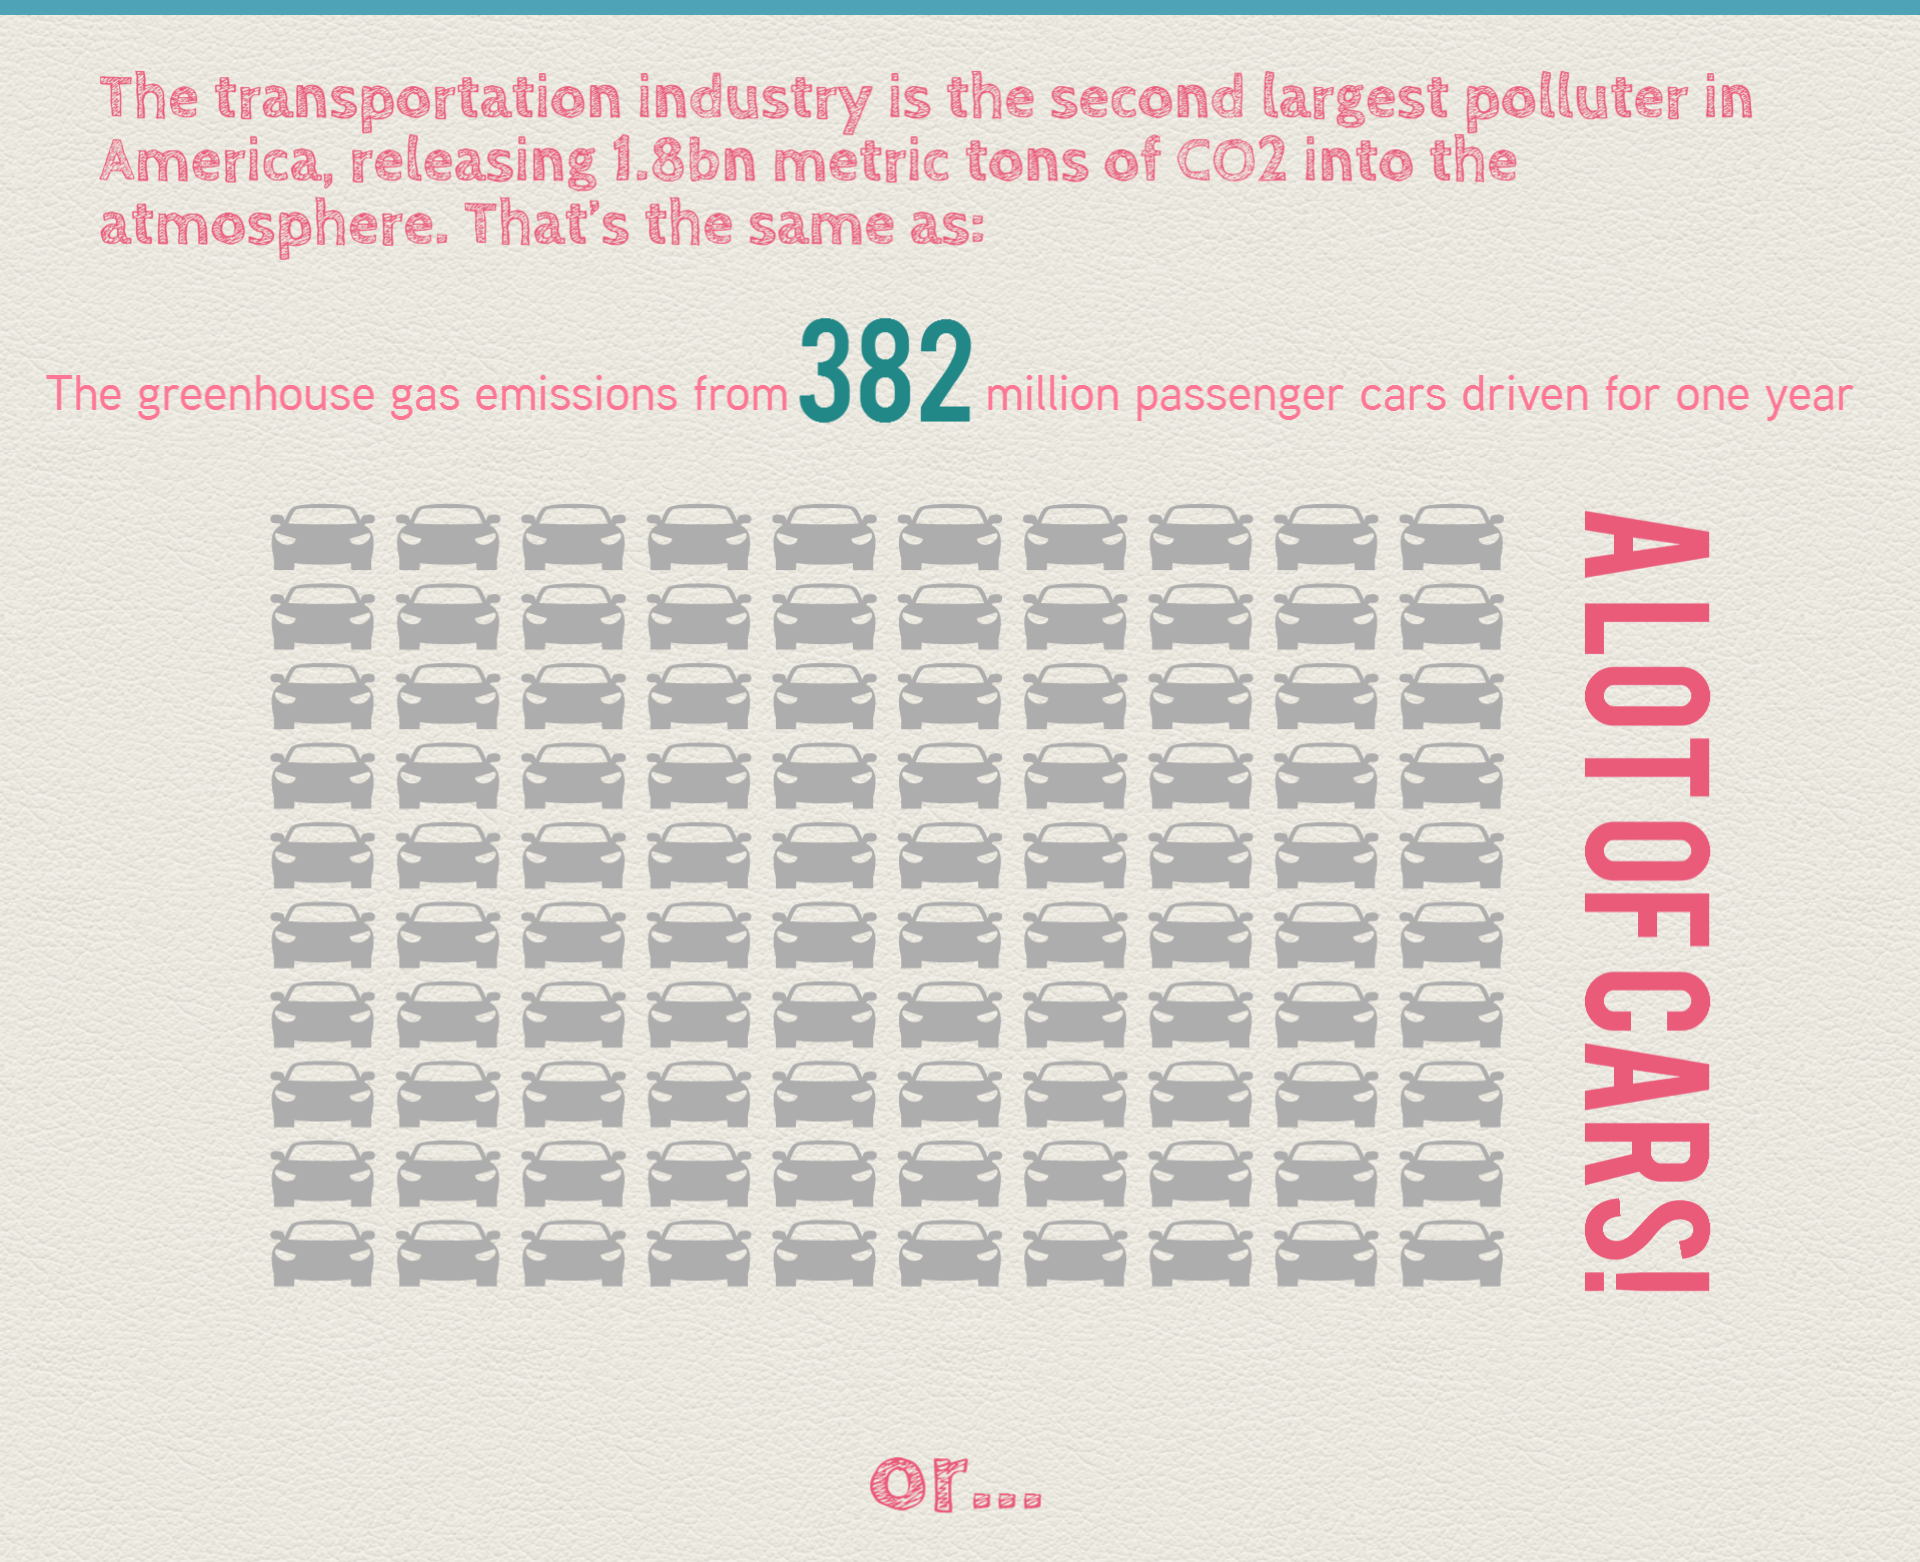 CO2 emissions fromn the transportation industry